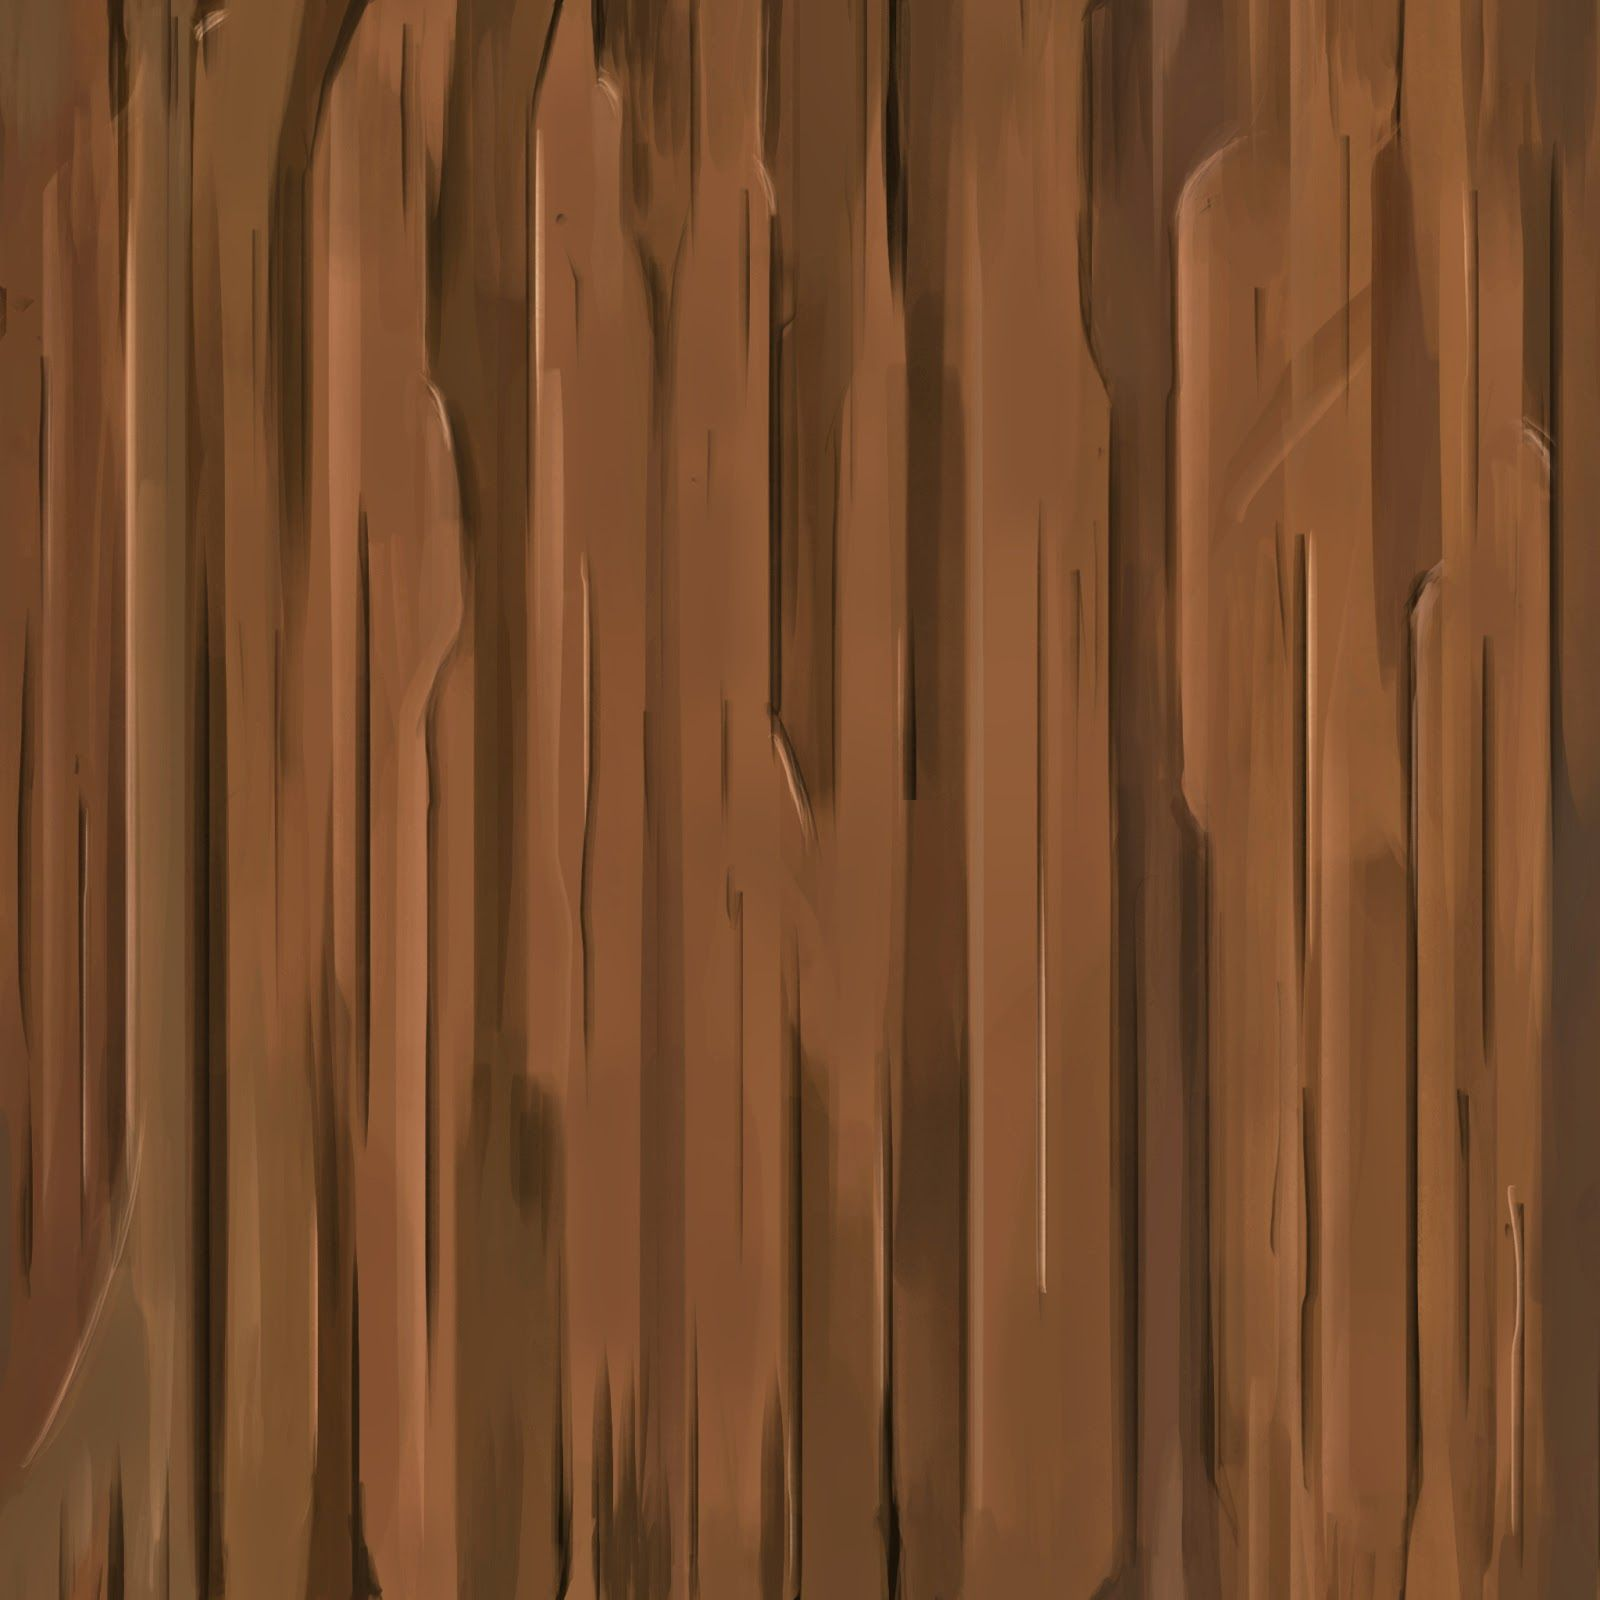 wood_texture.jpg (1600×1600) | Stylized Wood Material | Pinterest ...